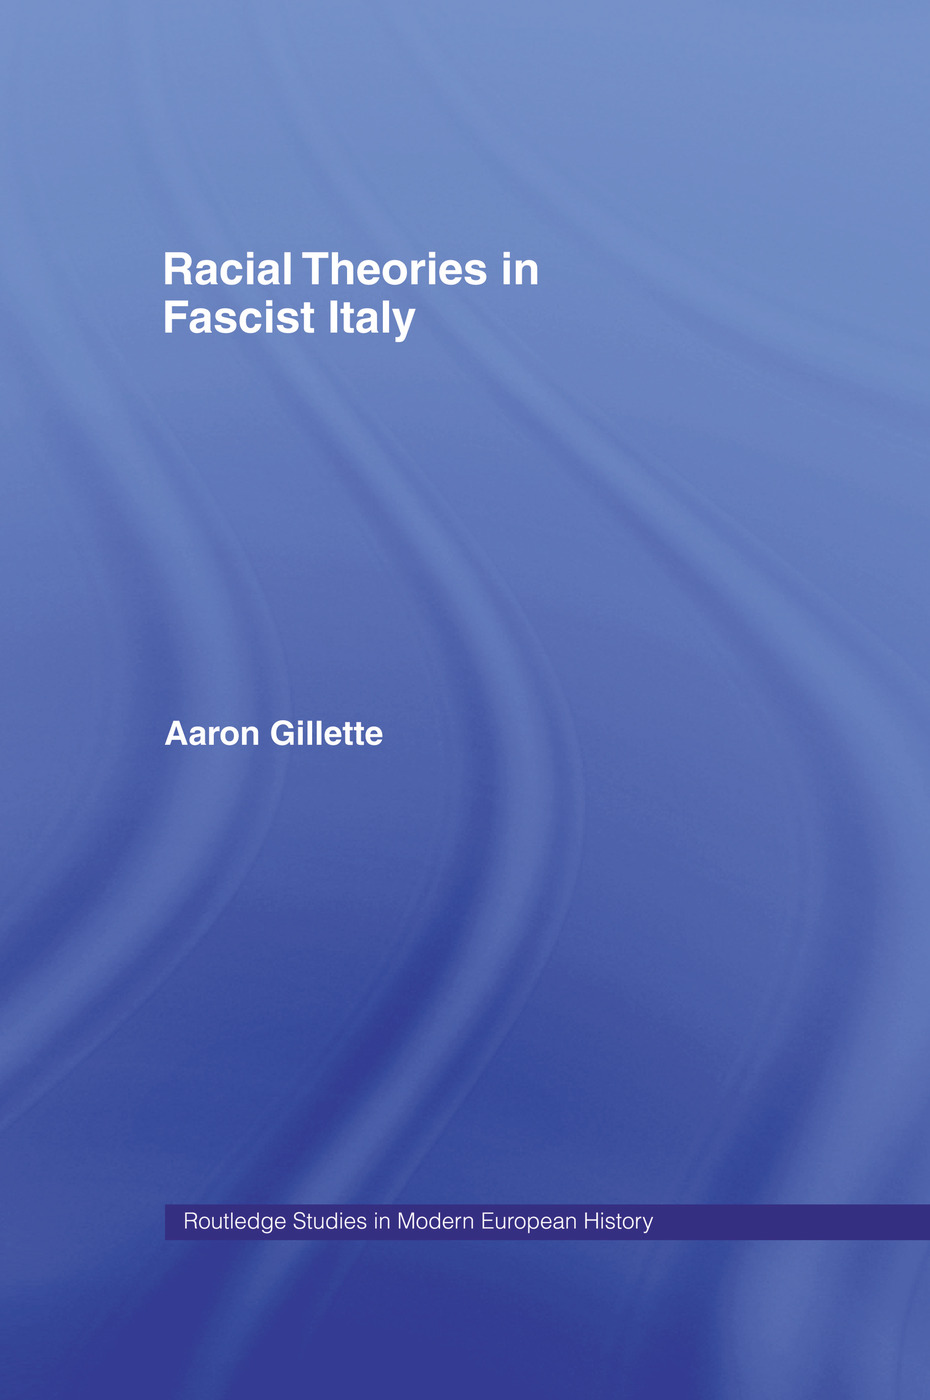 Racial Theories in Fascist Italy book cover